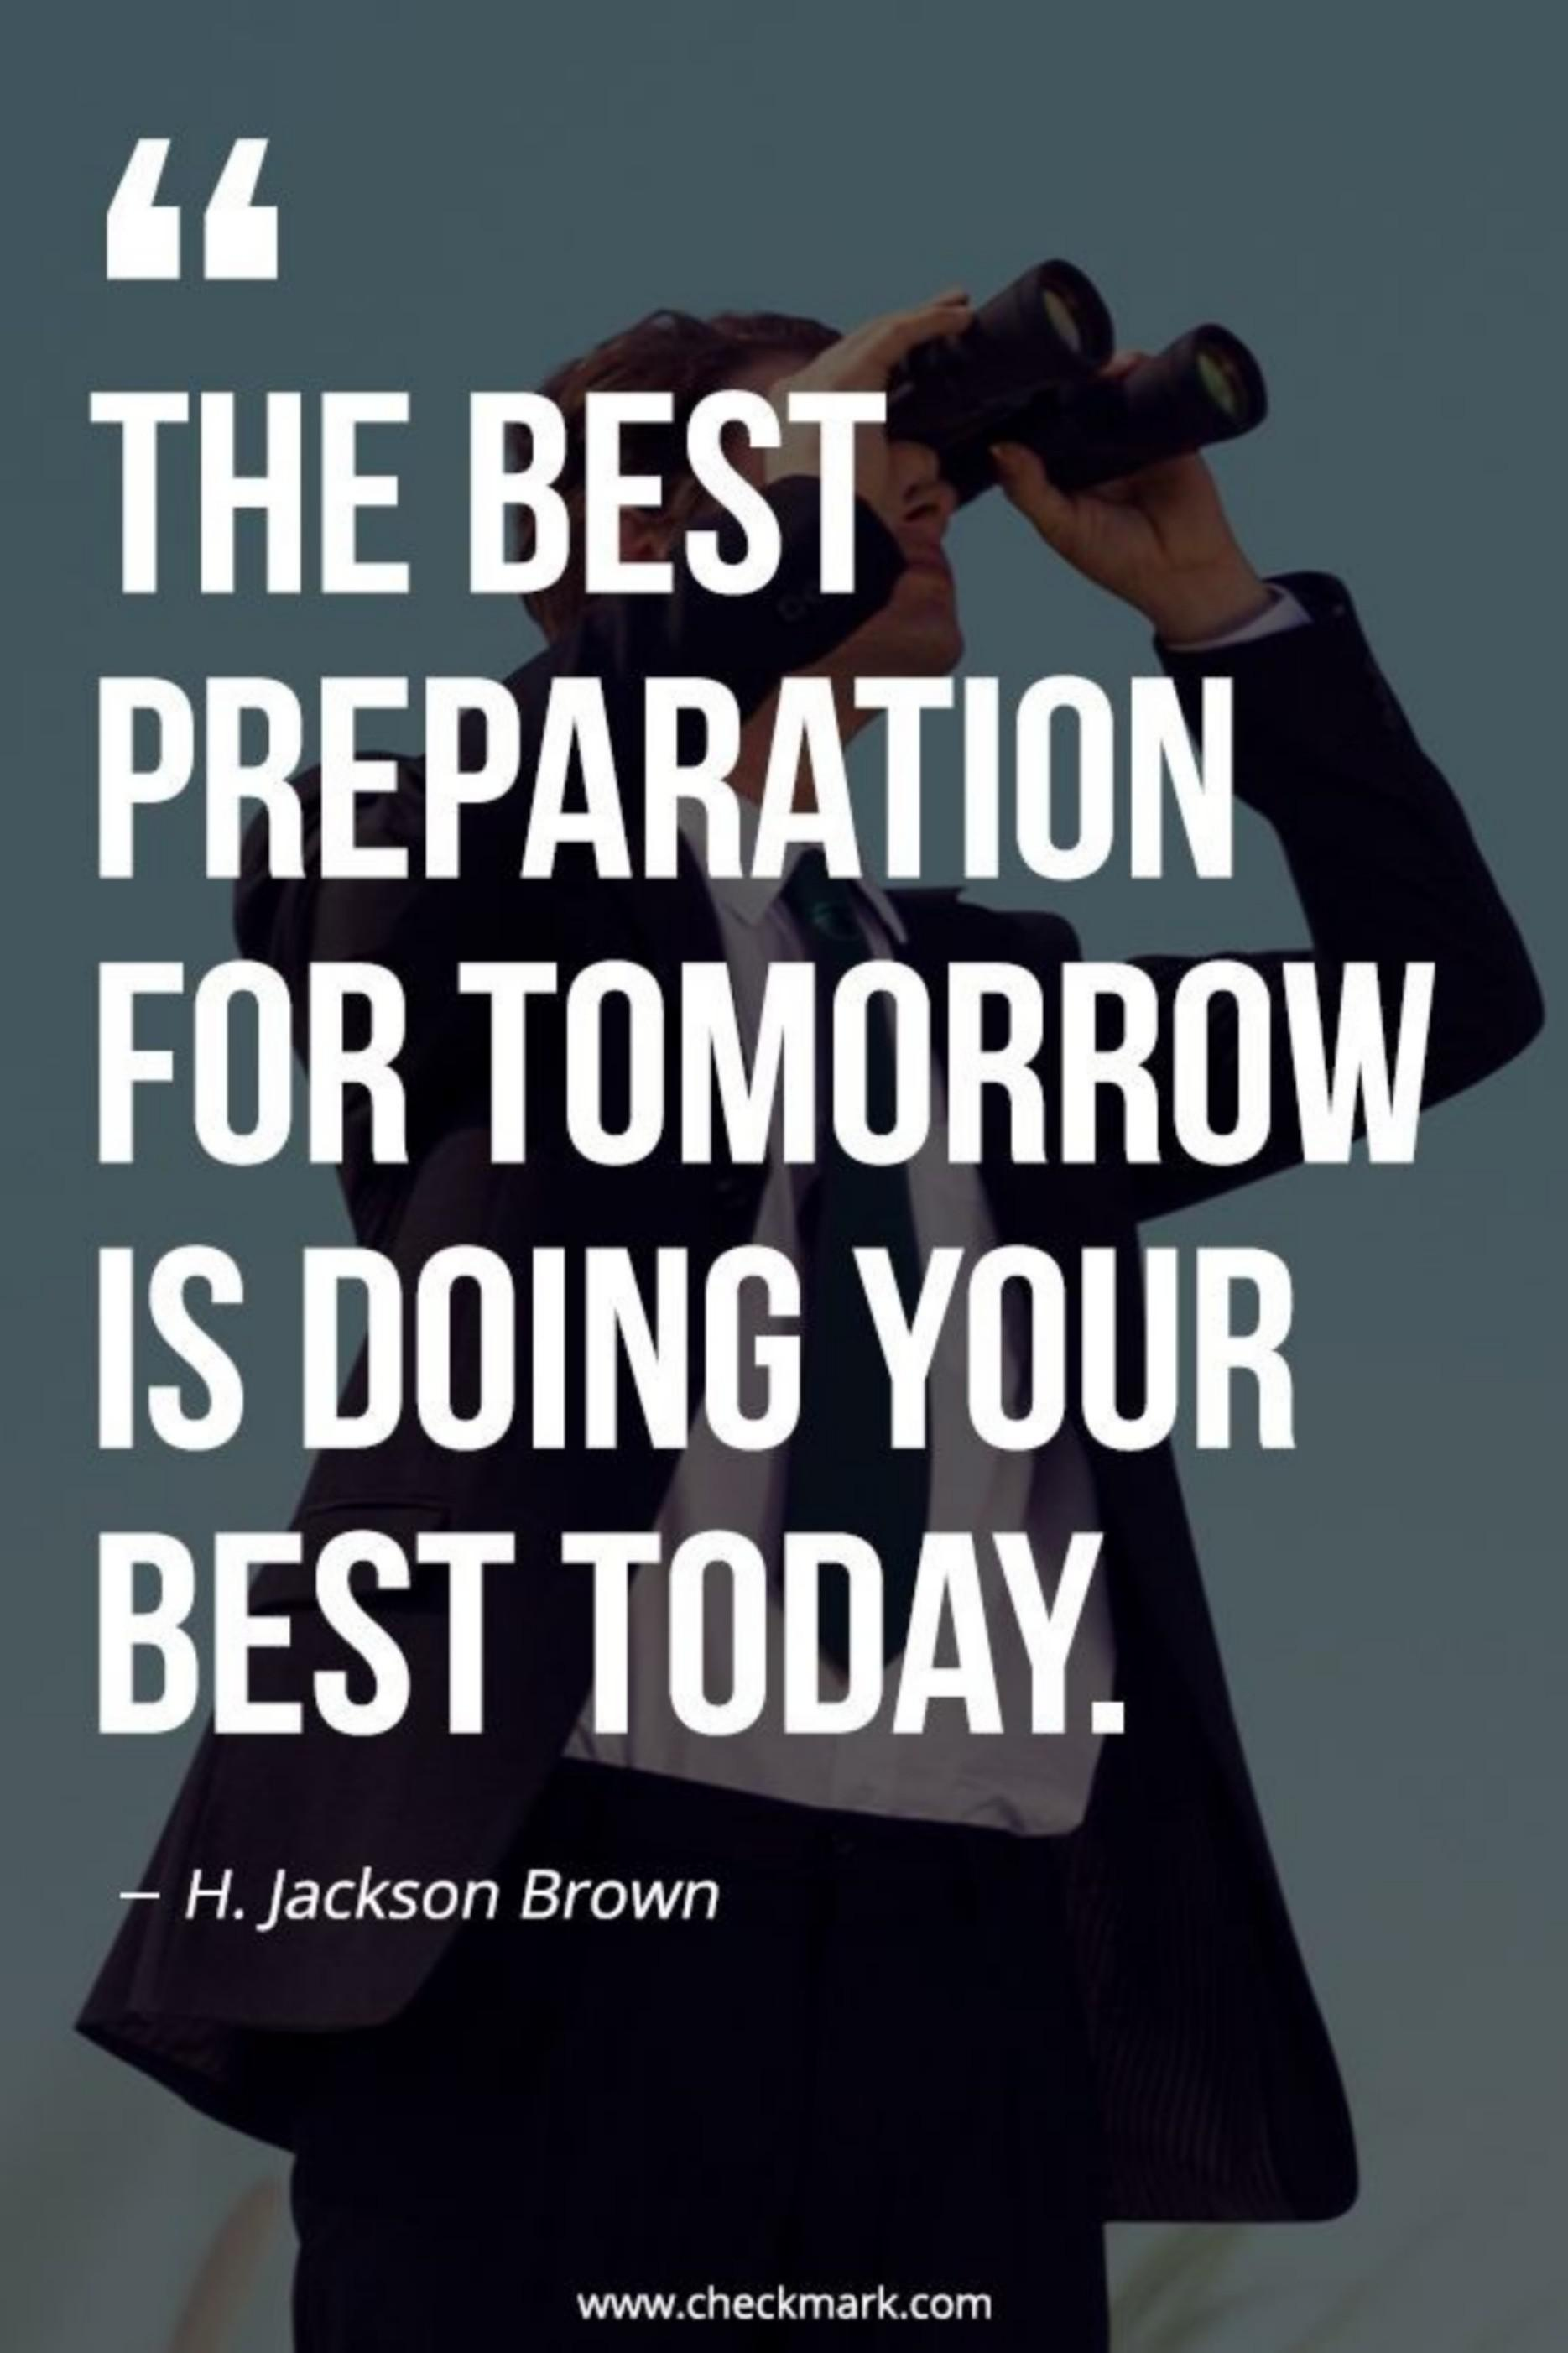 """THE BEST PREPARATION FOR TOMORROW IS DOING YOUR BEST TODAY."" -H. Jackson Brown [1869X2804]"